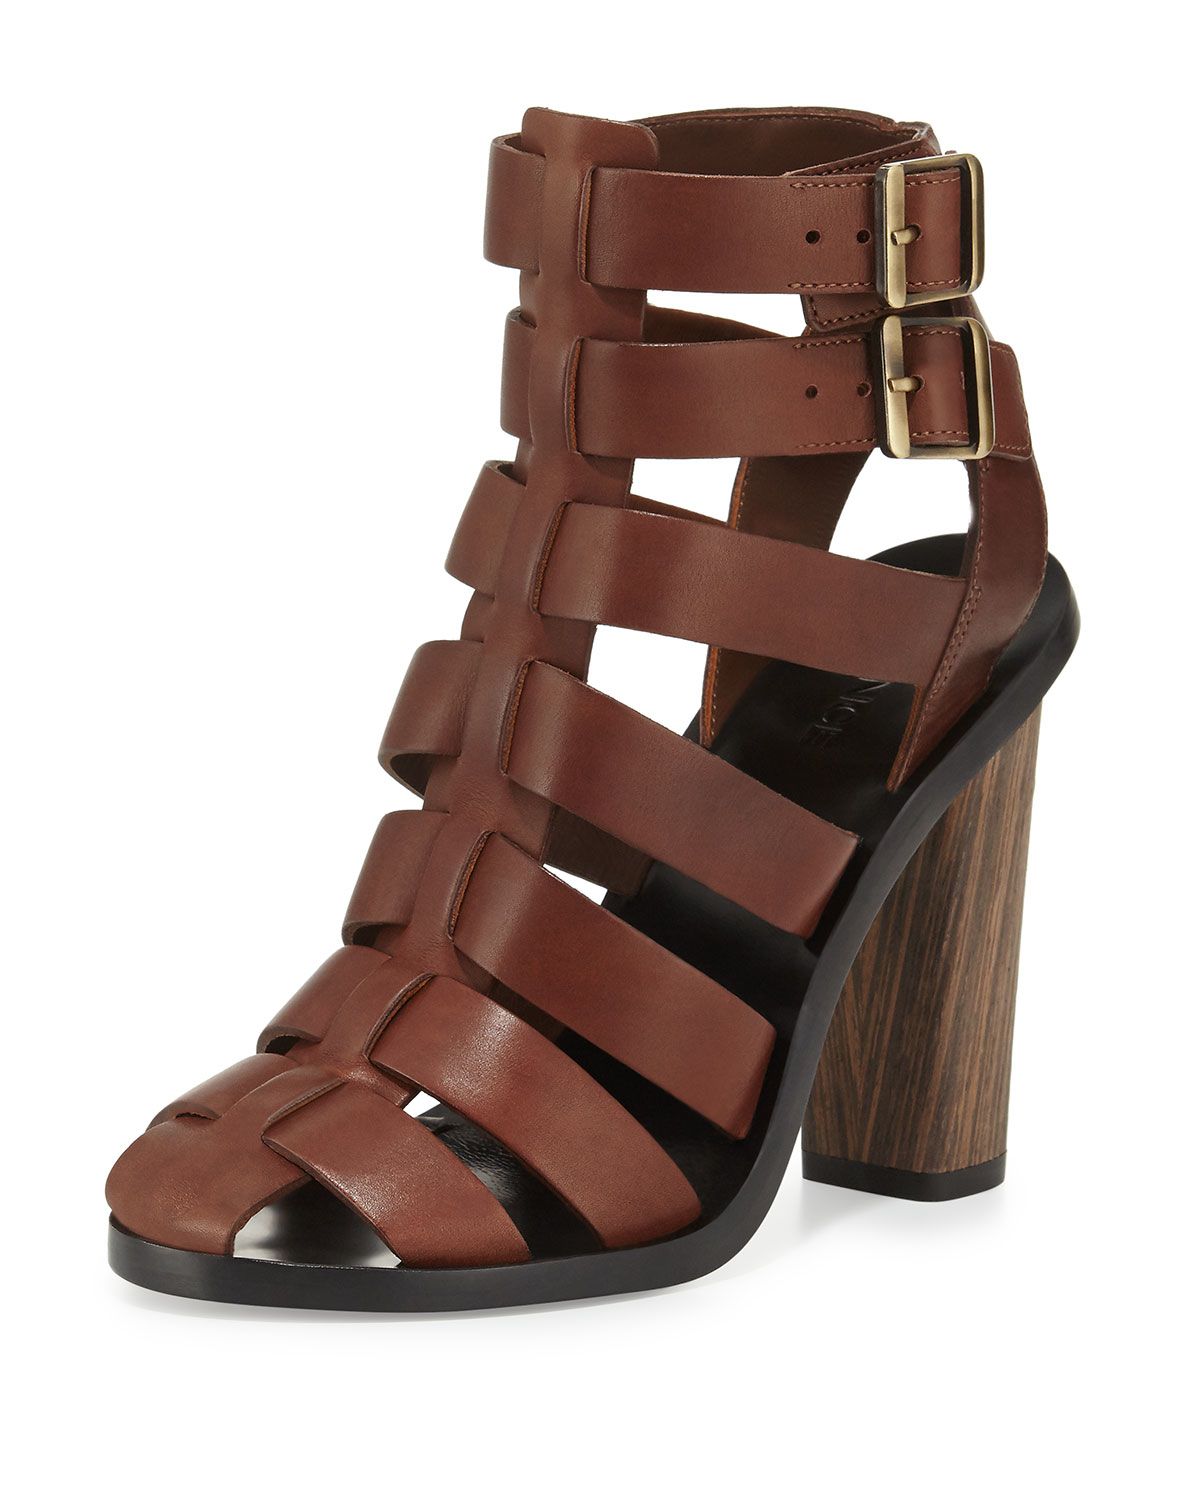 Vince Nicolette Strappy Leather Sandal In Brown Lyst